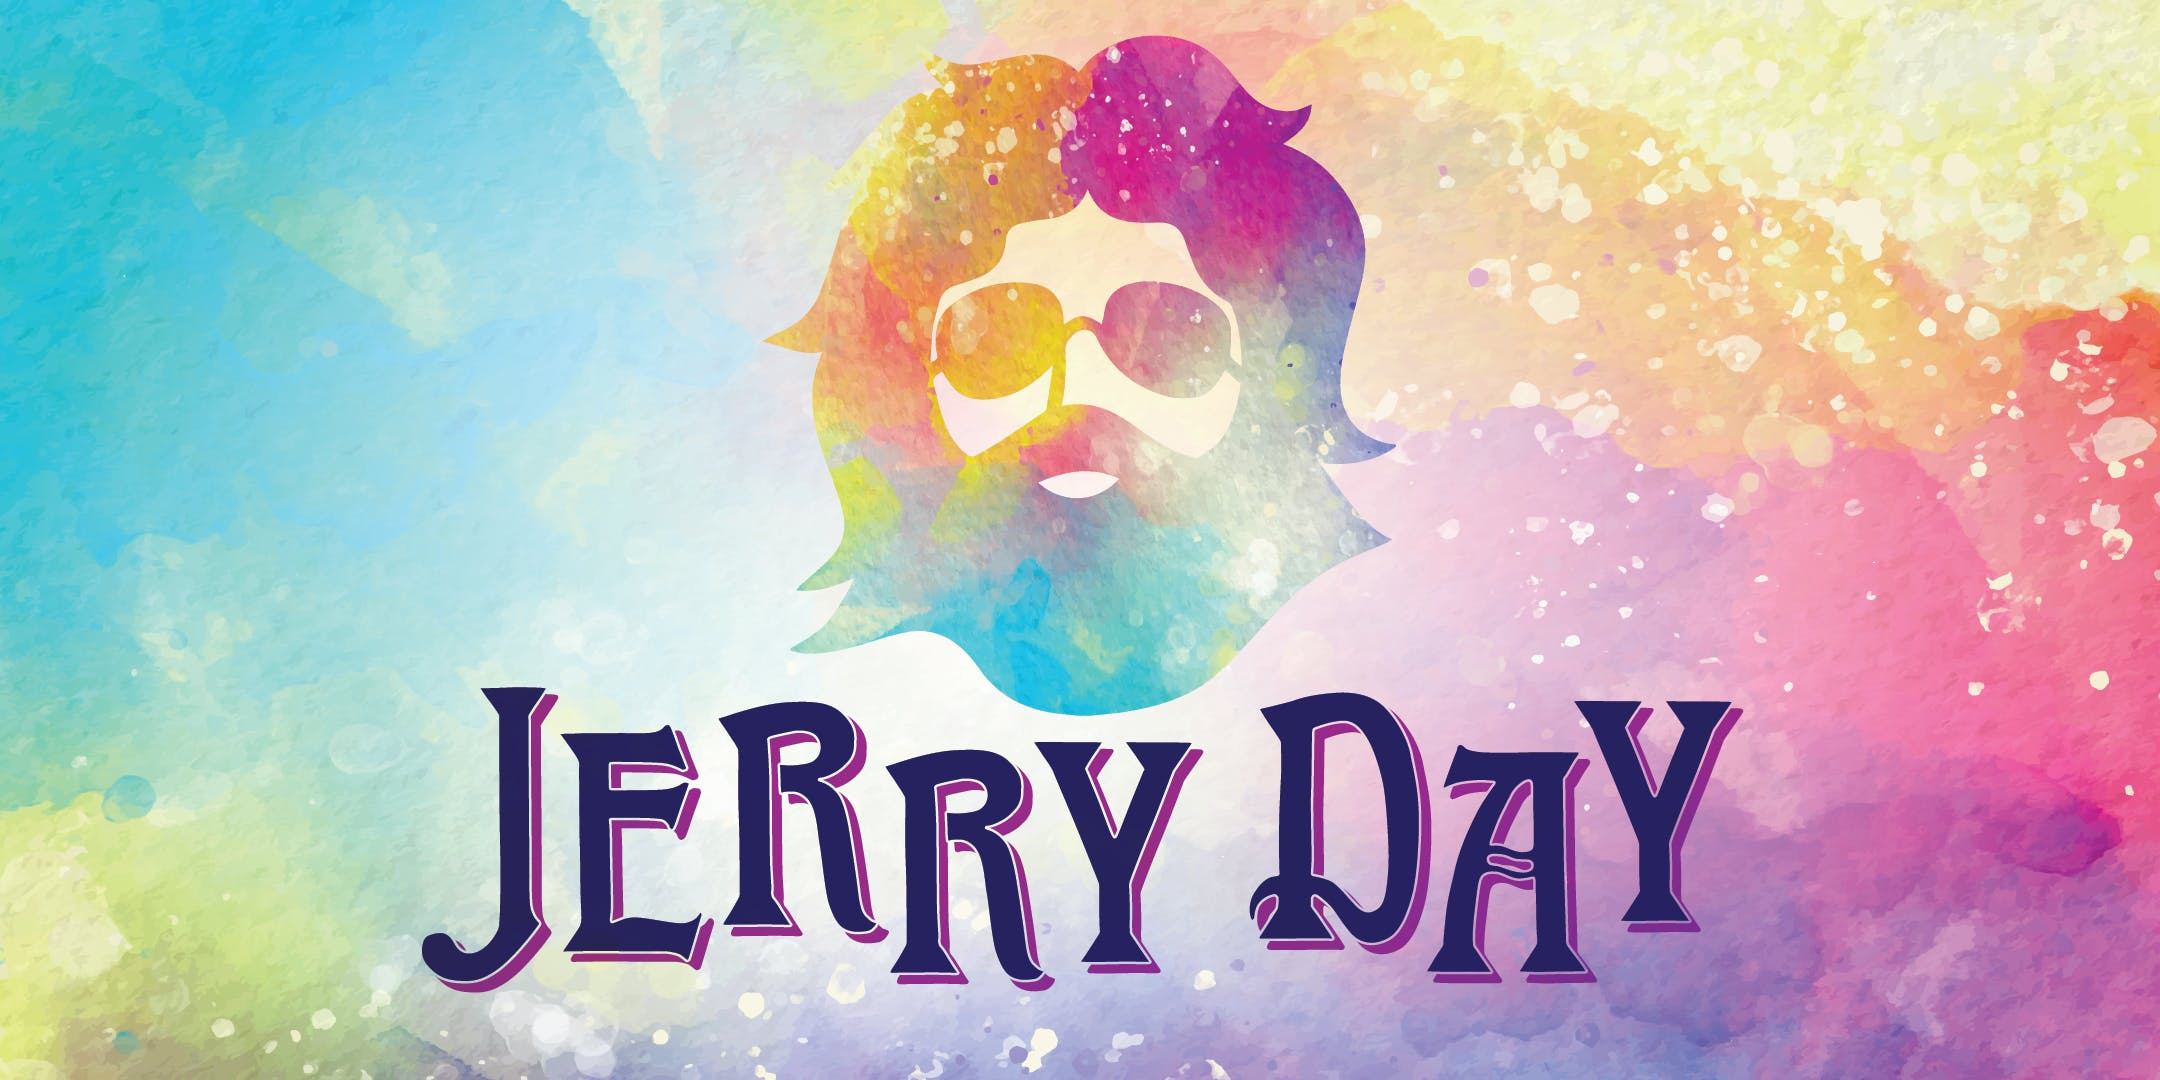 Jerry Day 2019